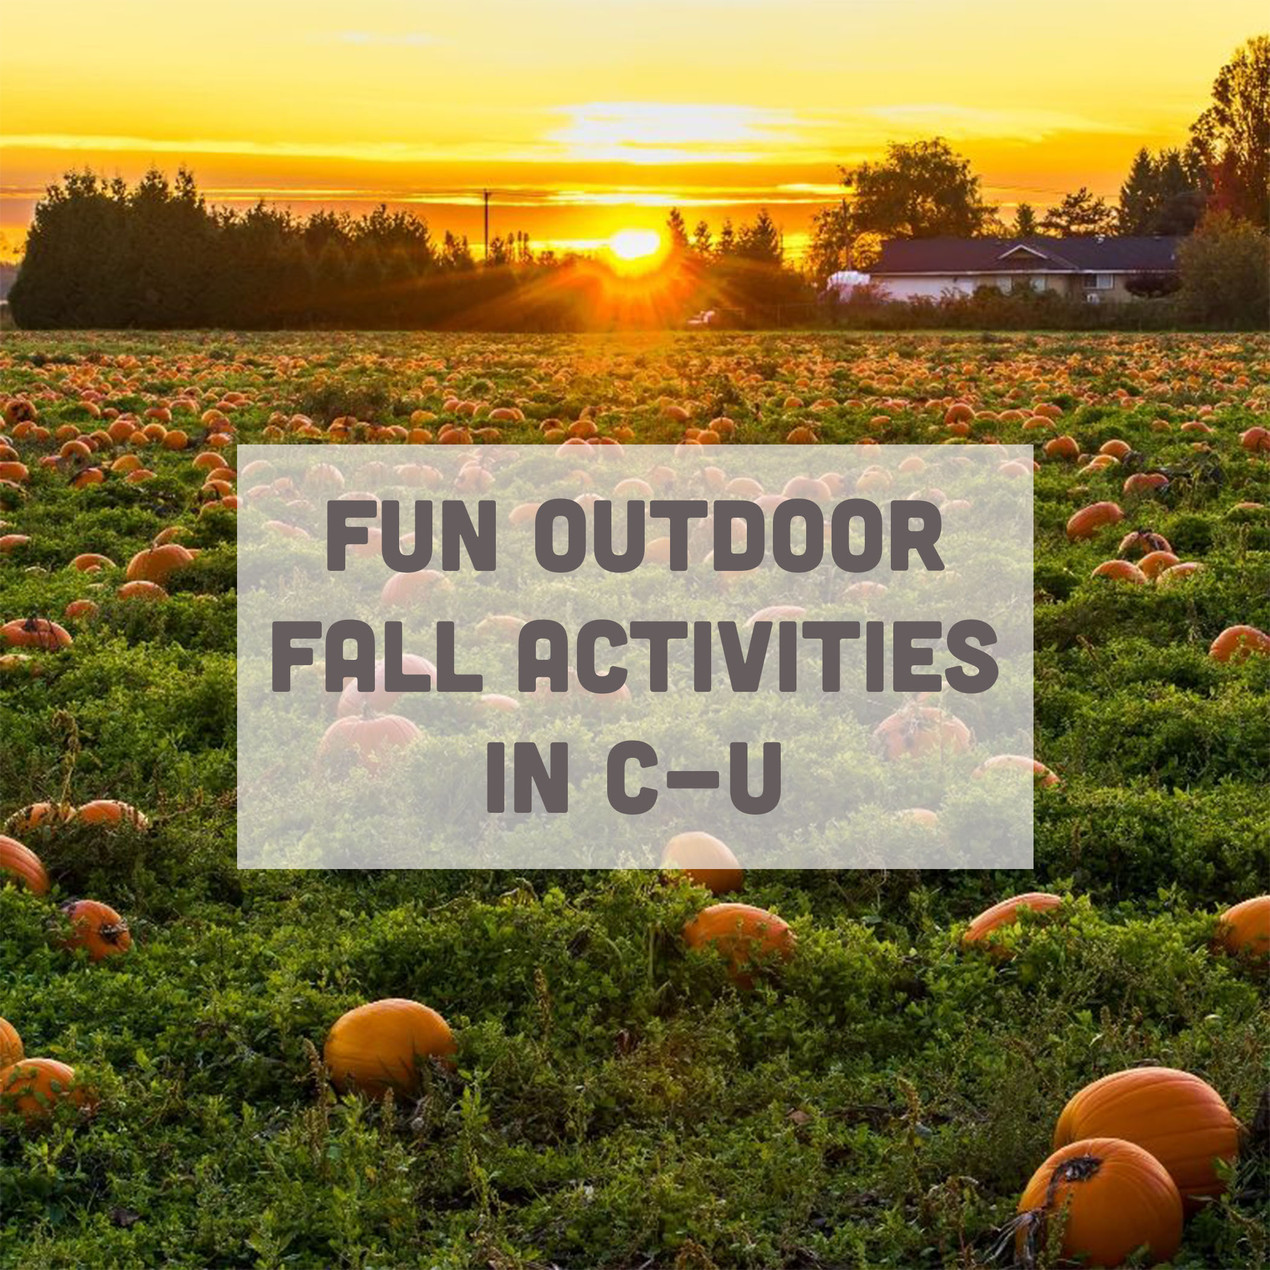 Fun Outdoor Fall Activities in C-U